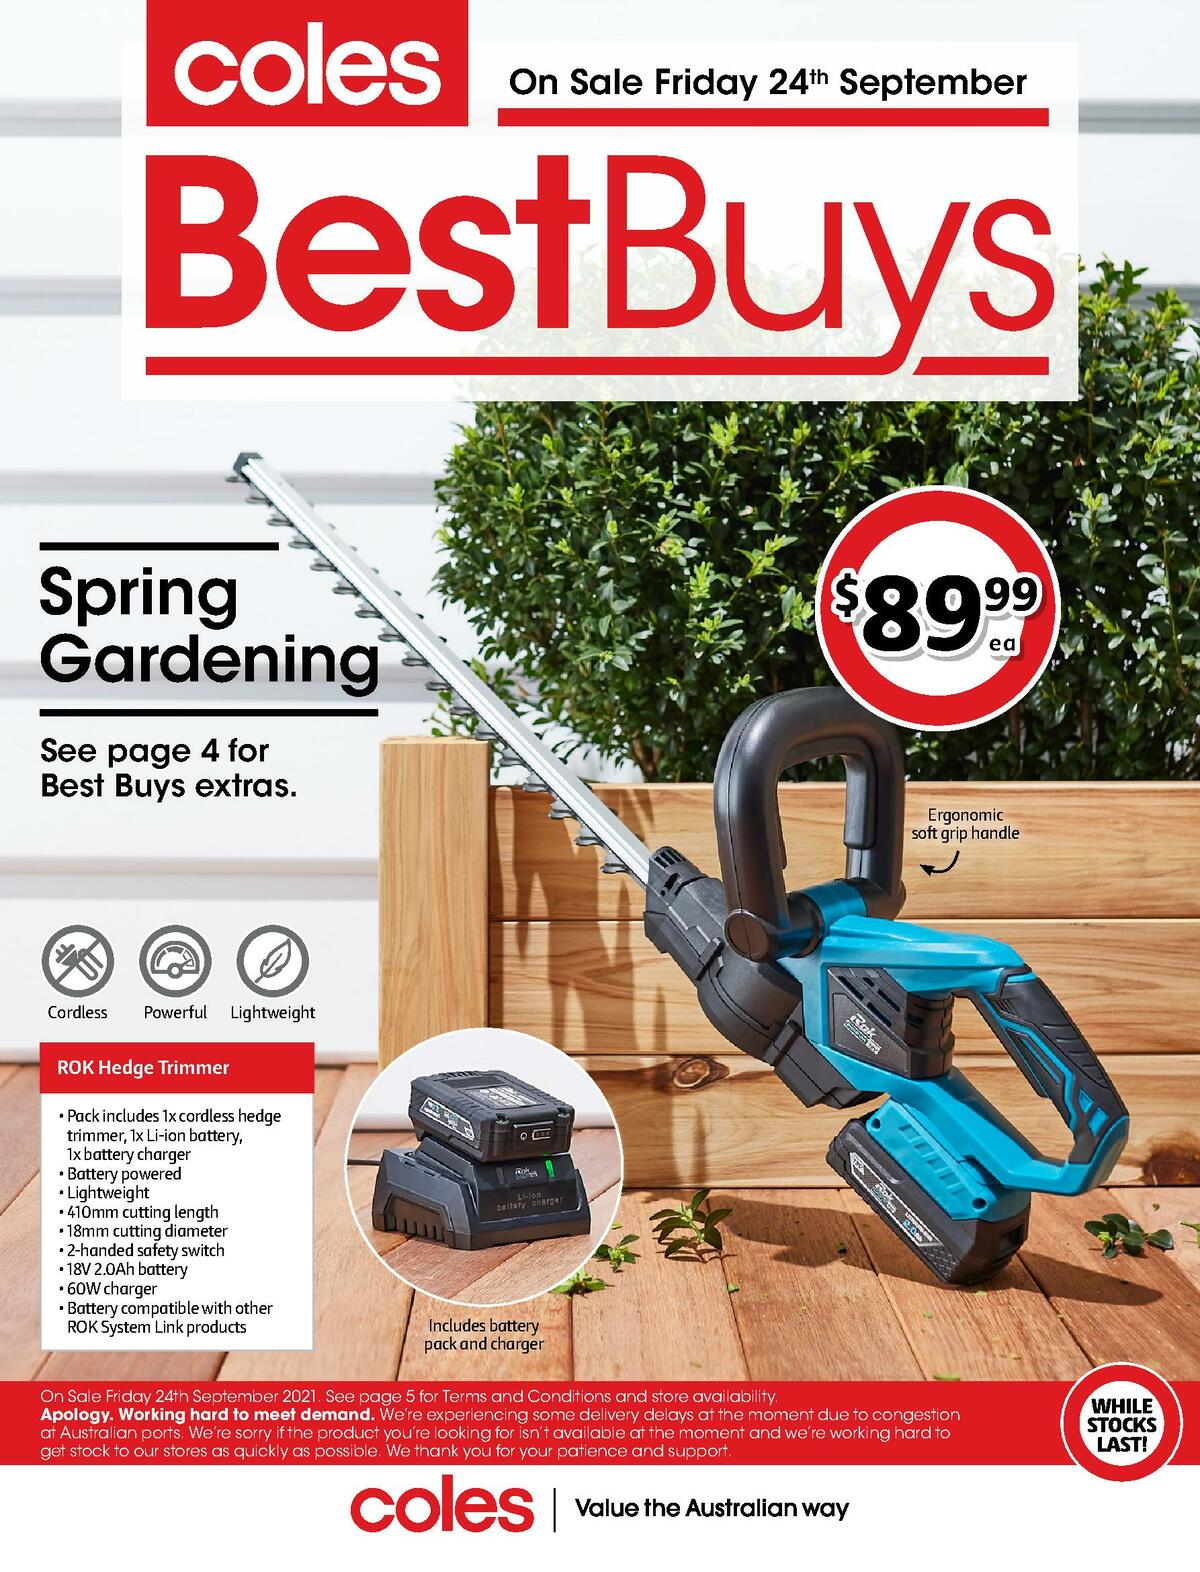 Coles Best Buys - Spring Gardening Catalogues from September 24